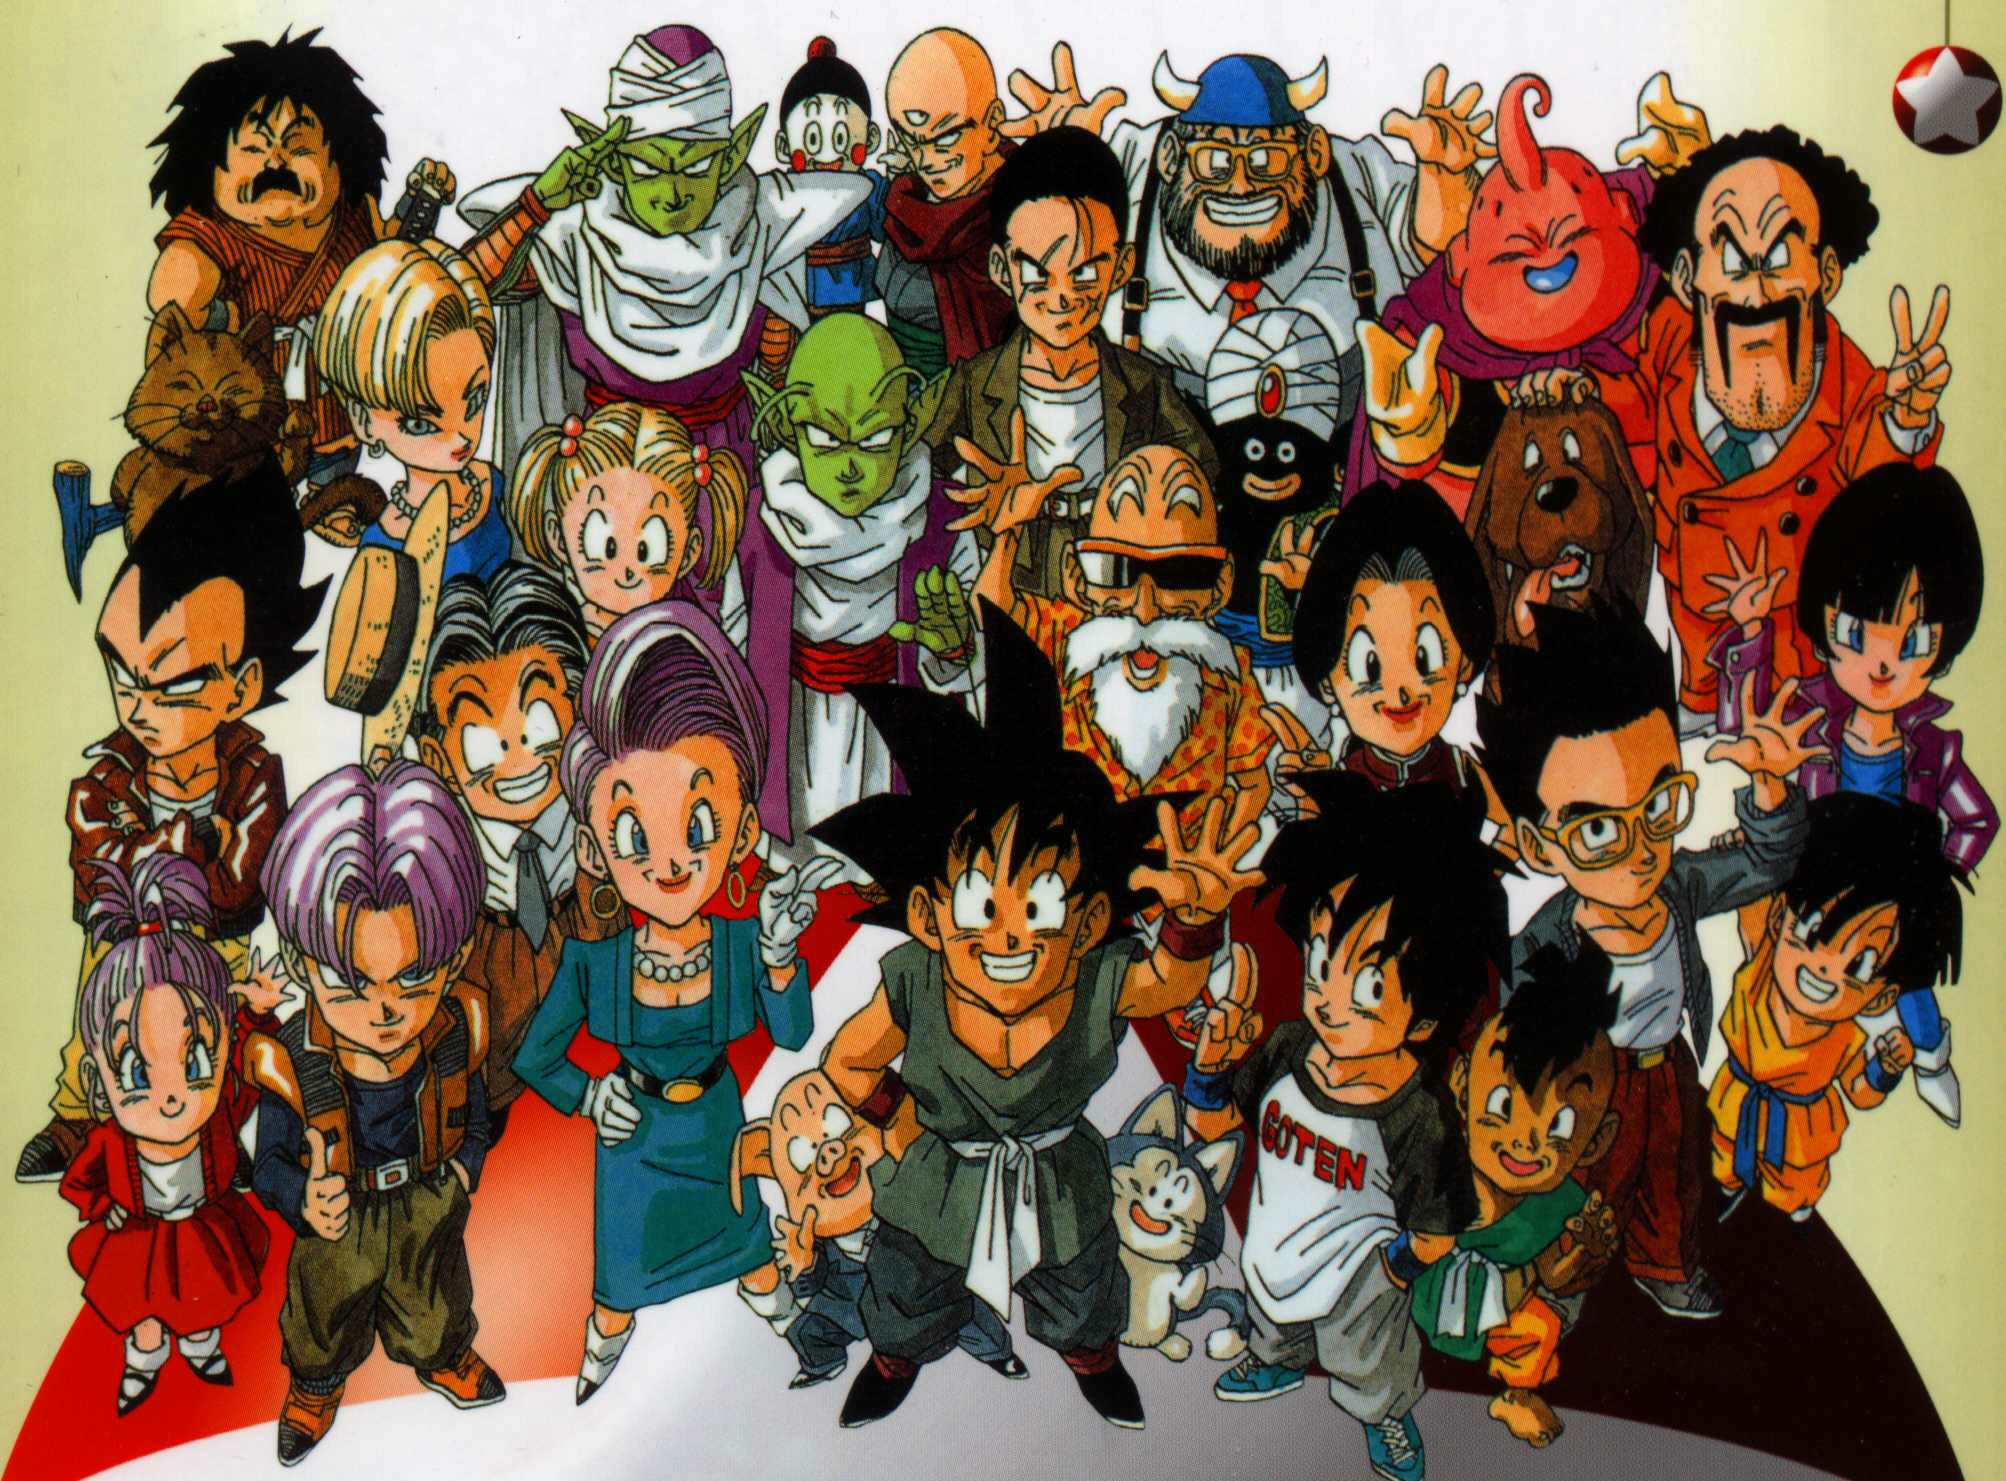 Free Download Dragon Ball Gt Hd Wallpapers 2006x1481 For Your